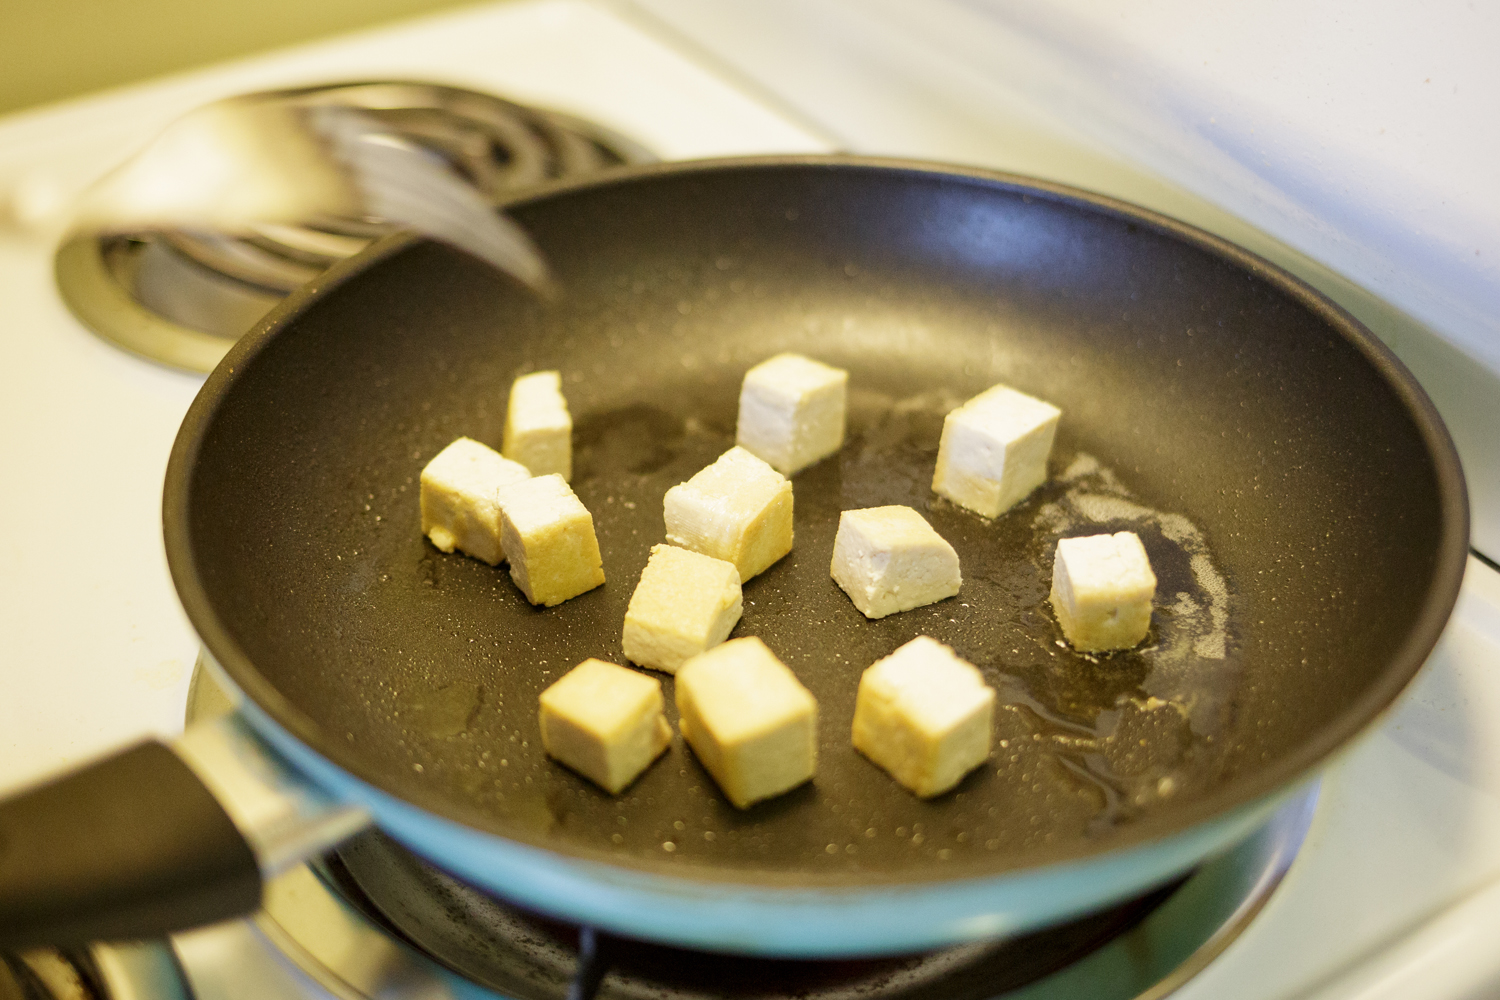 Tofu cooking in a pan.